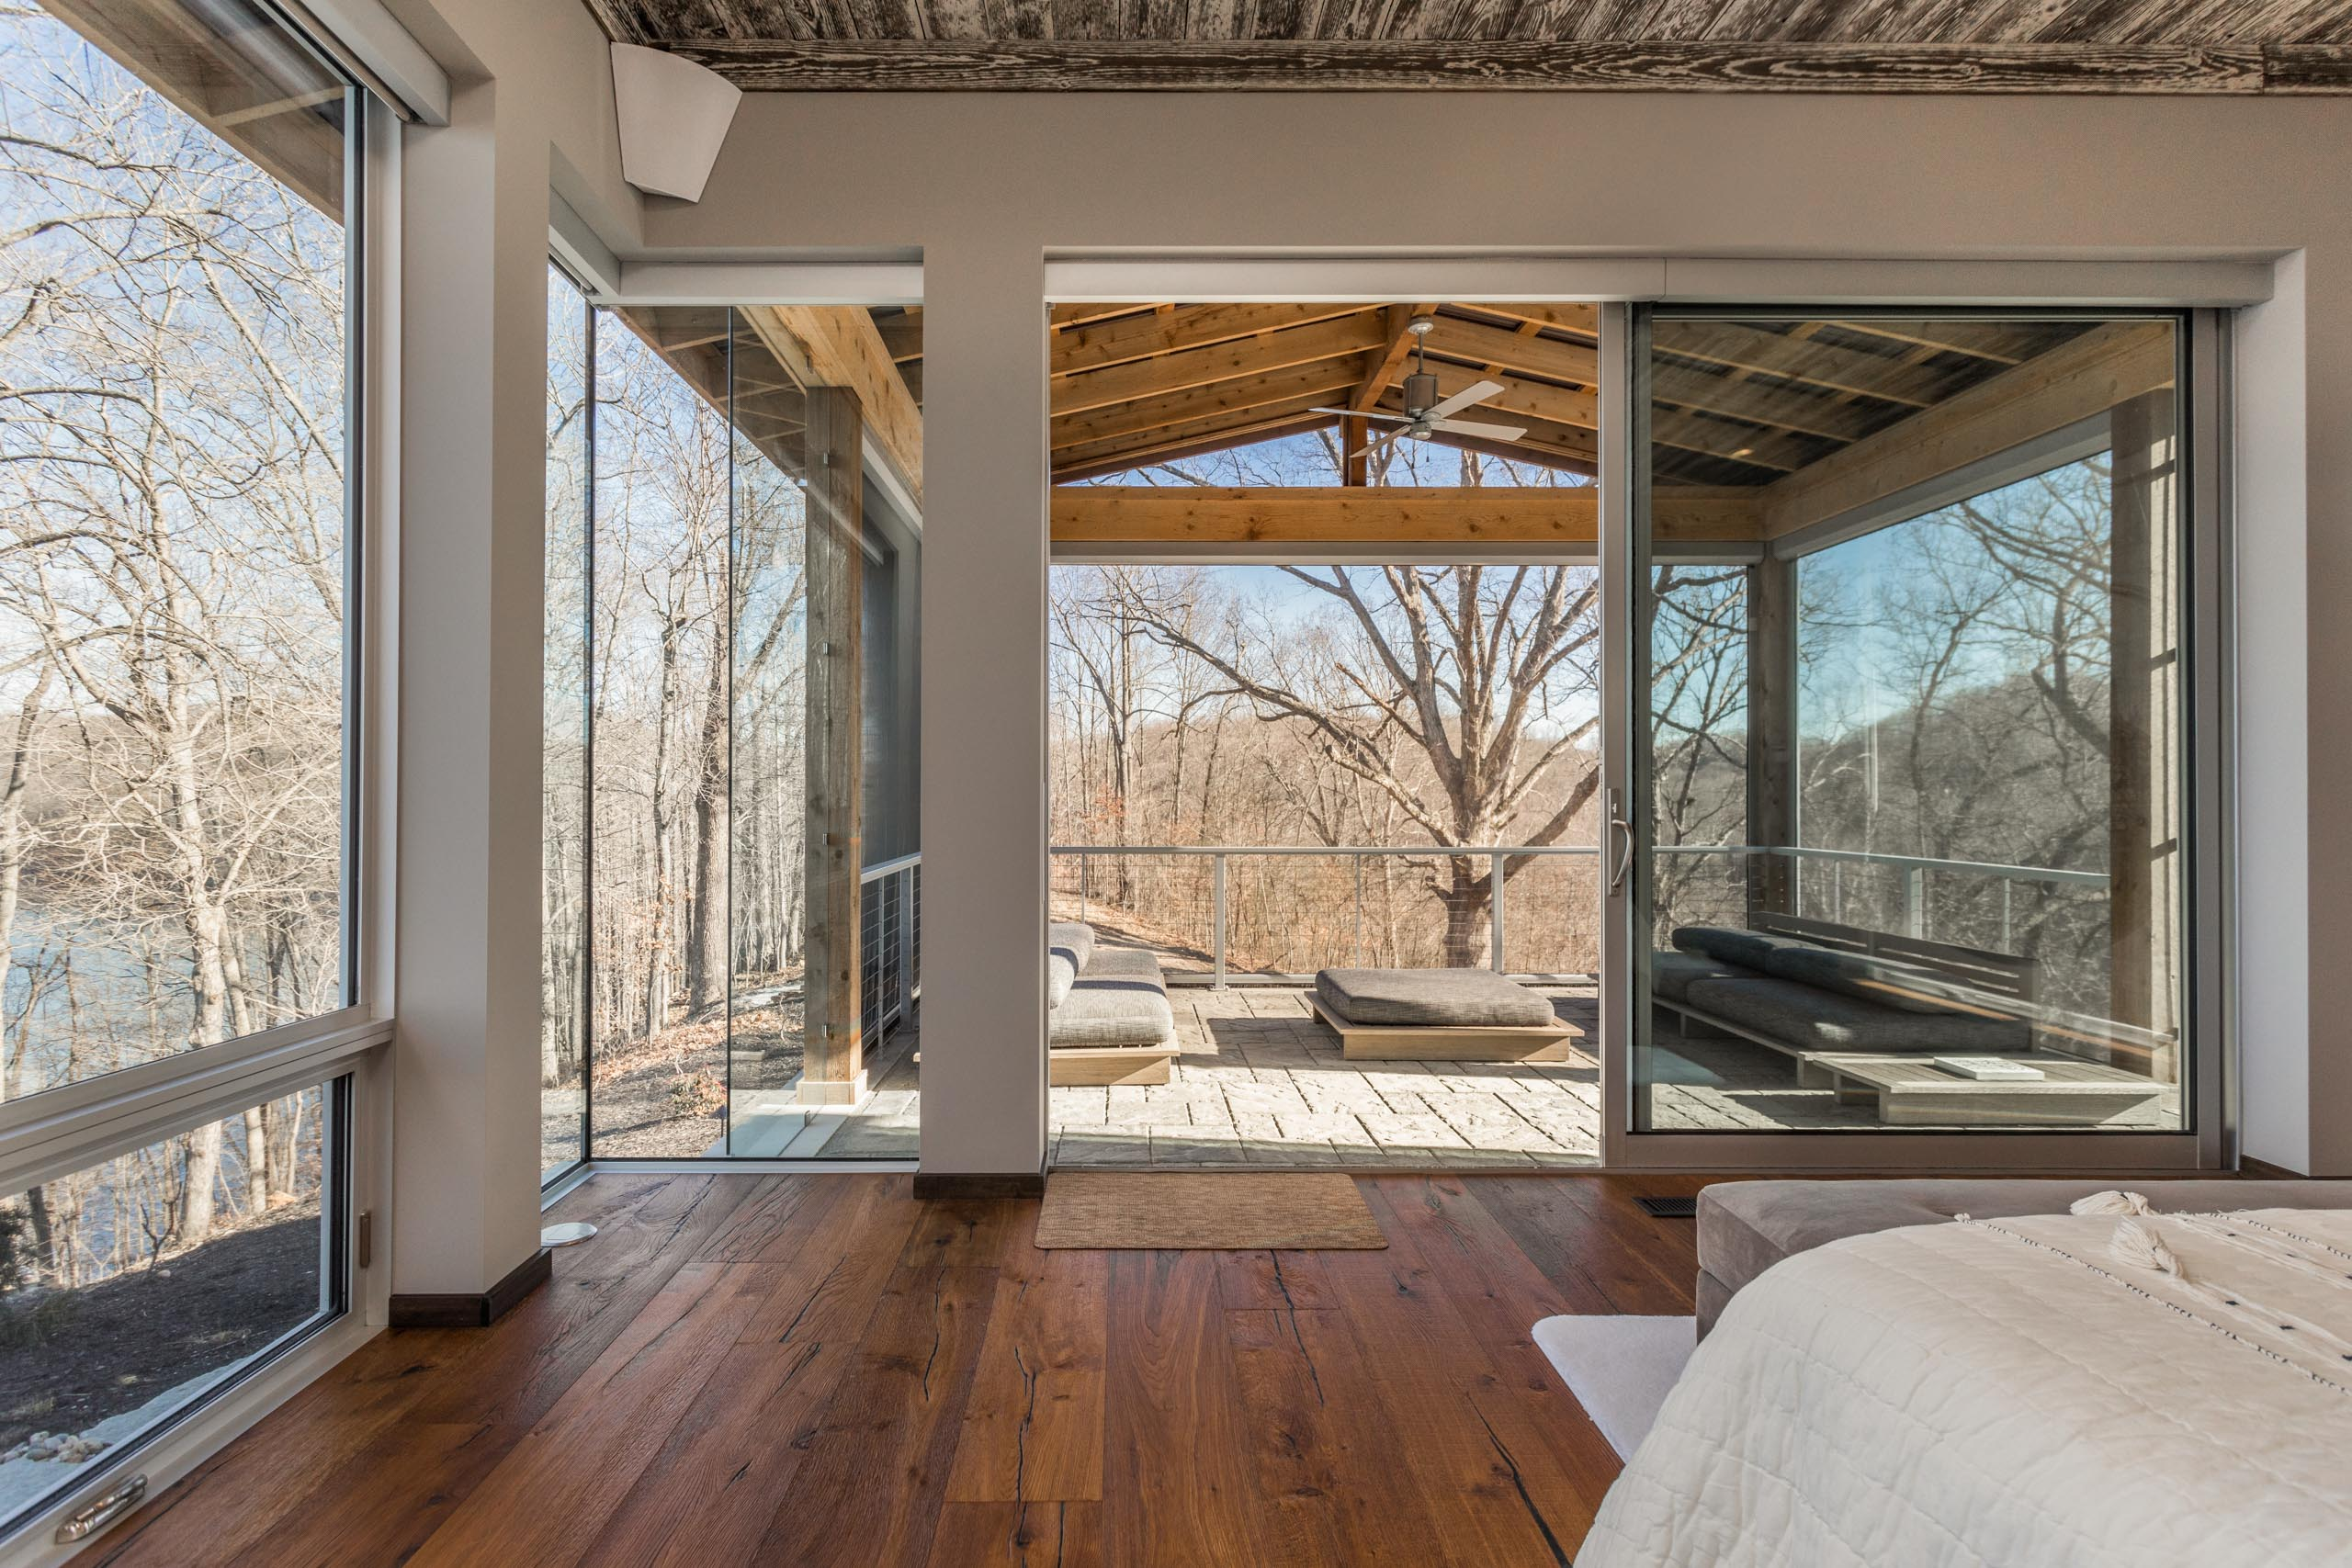 A huge sliding glass door opens from the master bedroom to an enclosed outdoor living space.